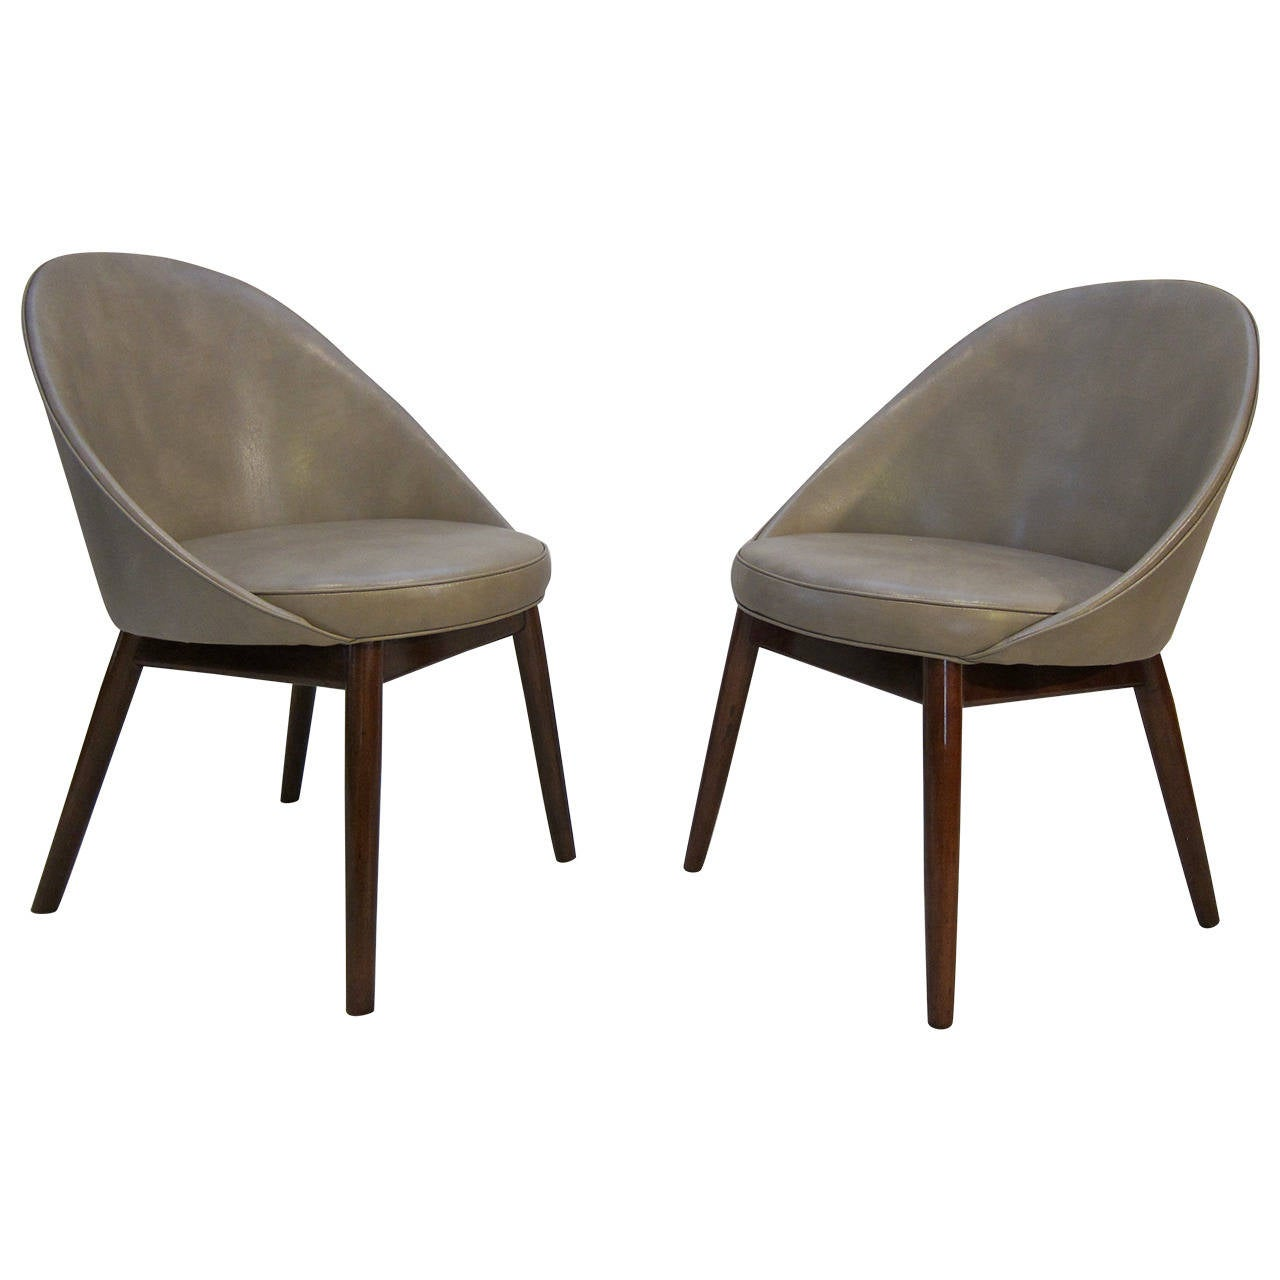 Pair of Danish Chairs Attributed to Ejvind Johansson For Sale